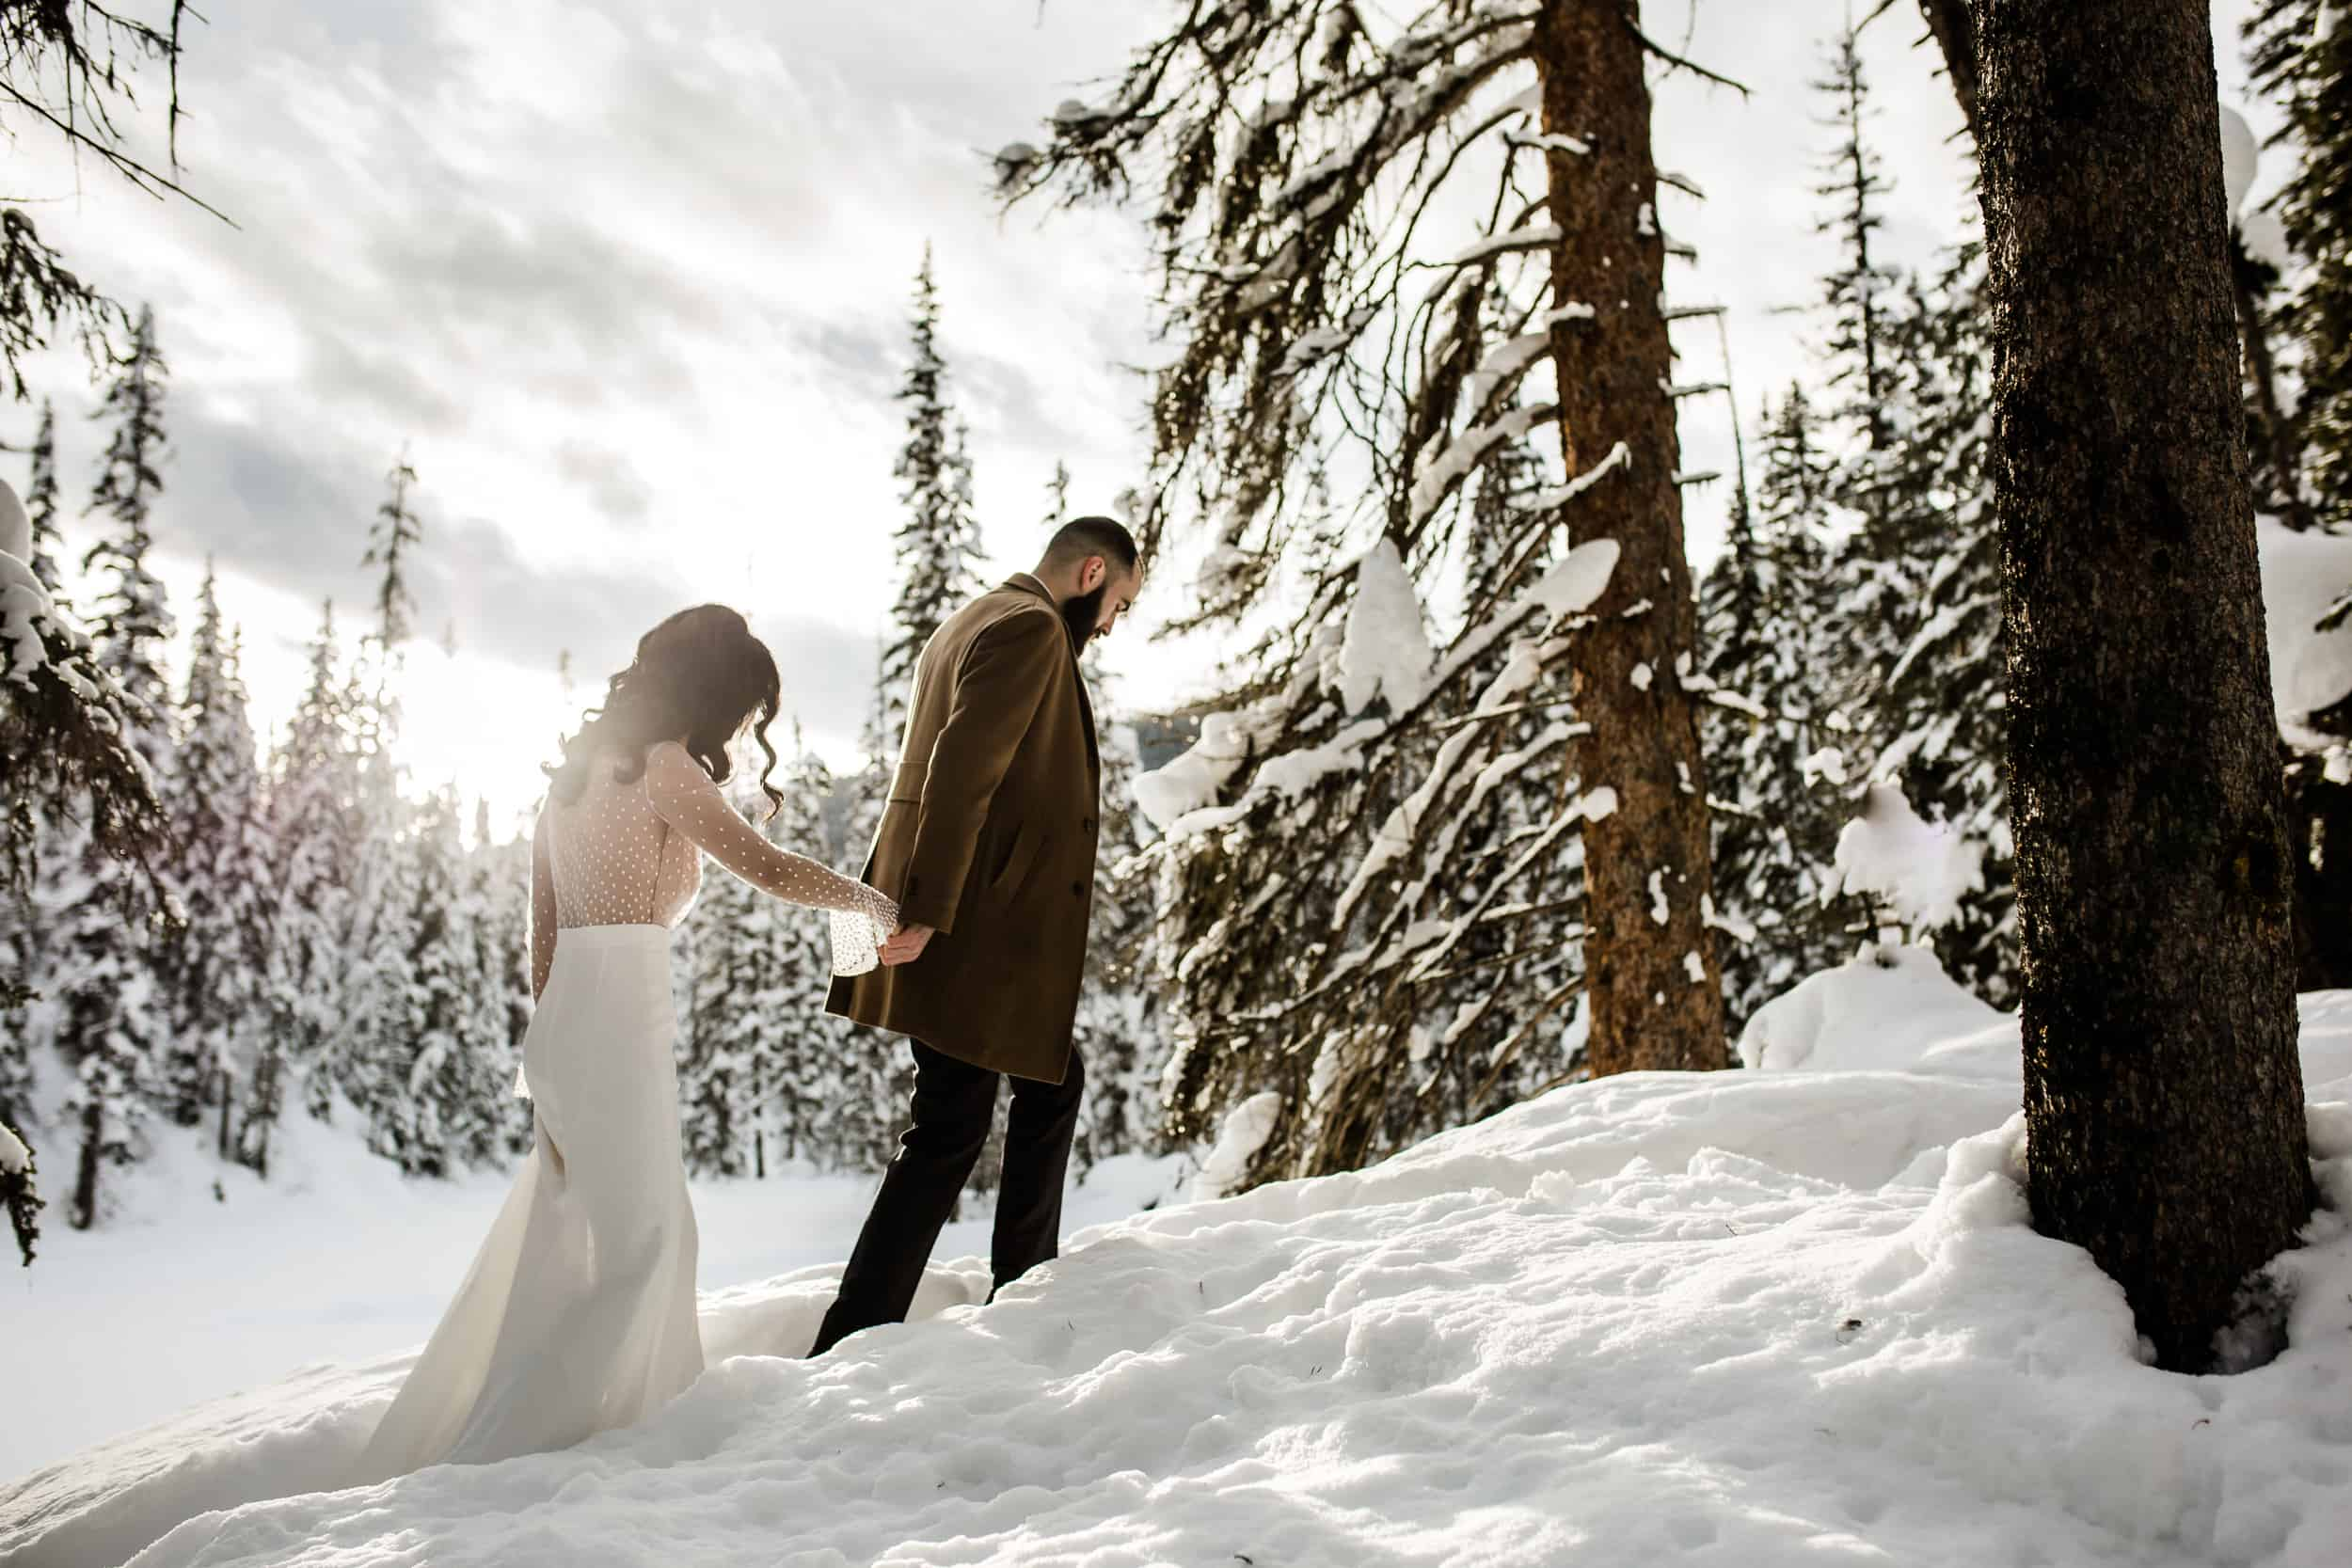 Winter Wedding Magic in the Forest